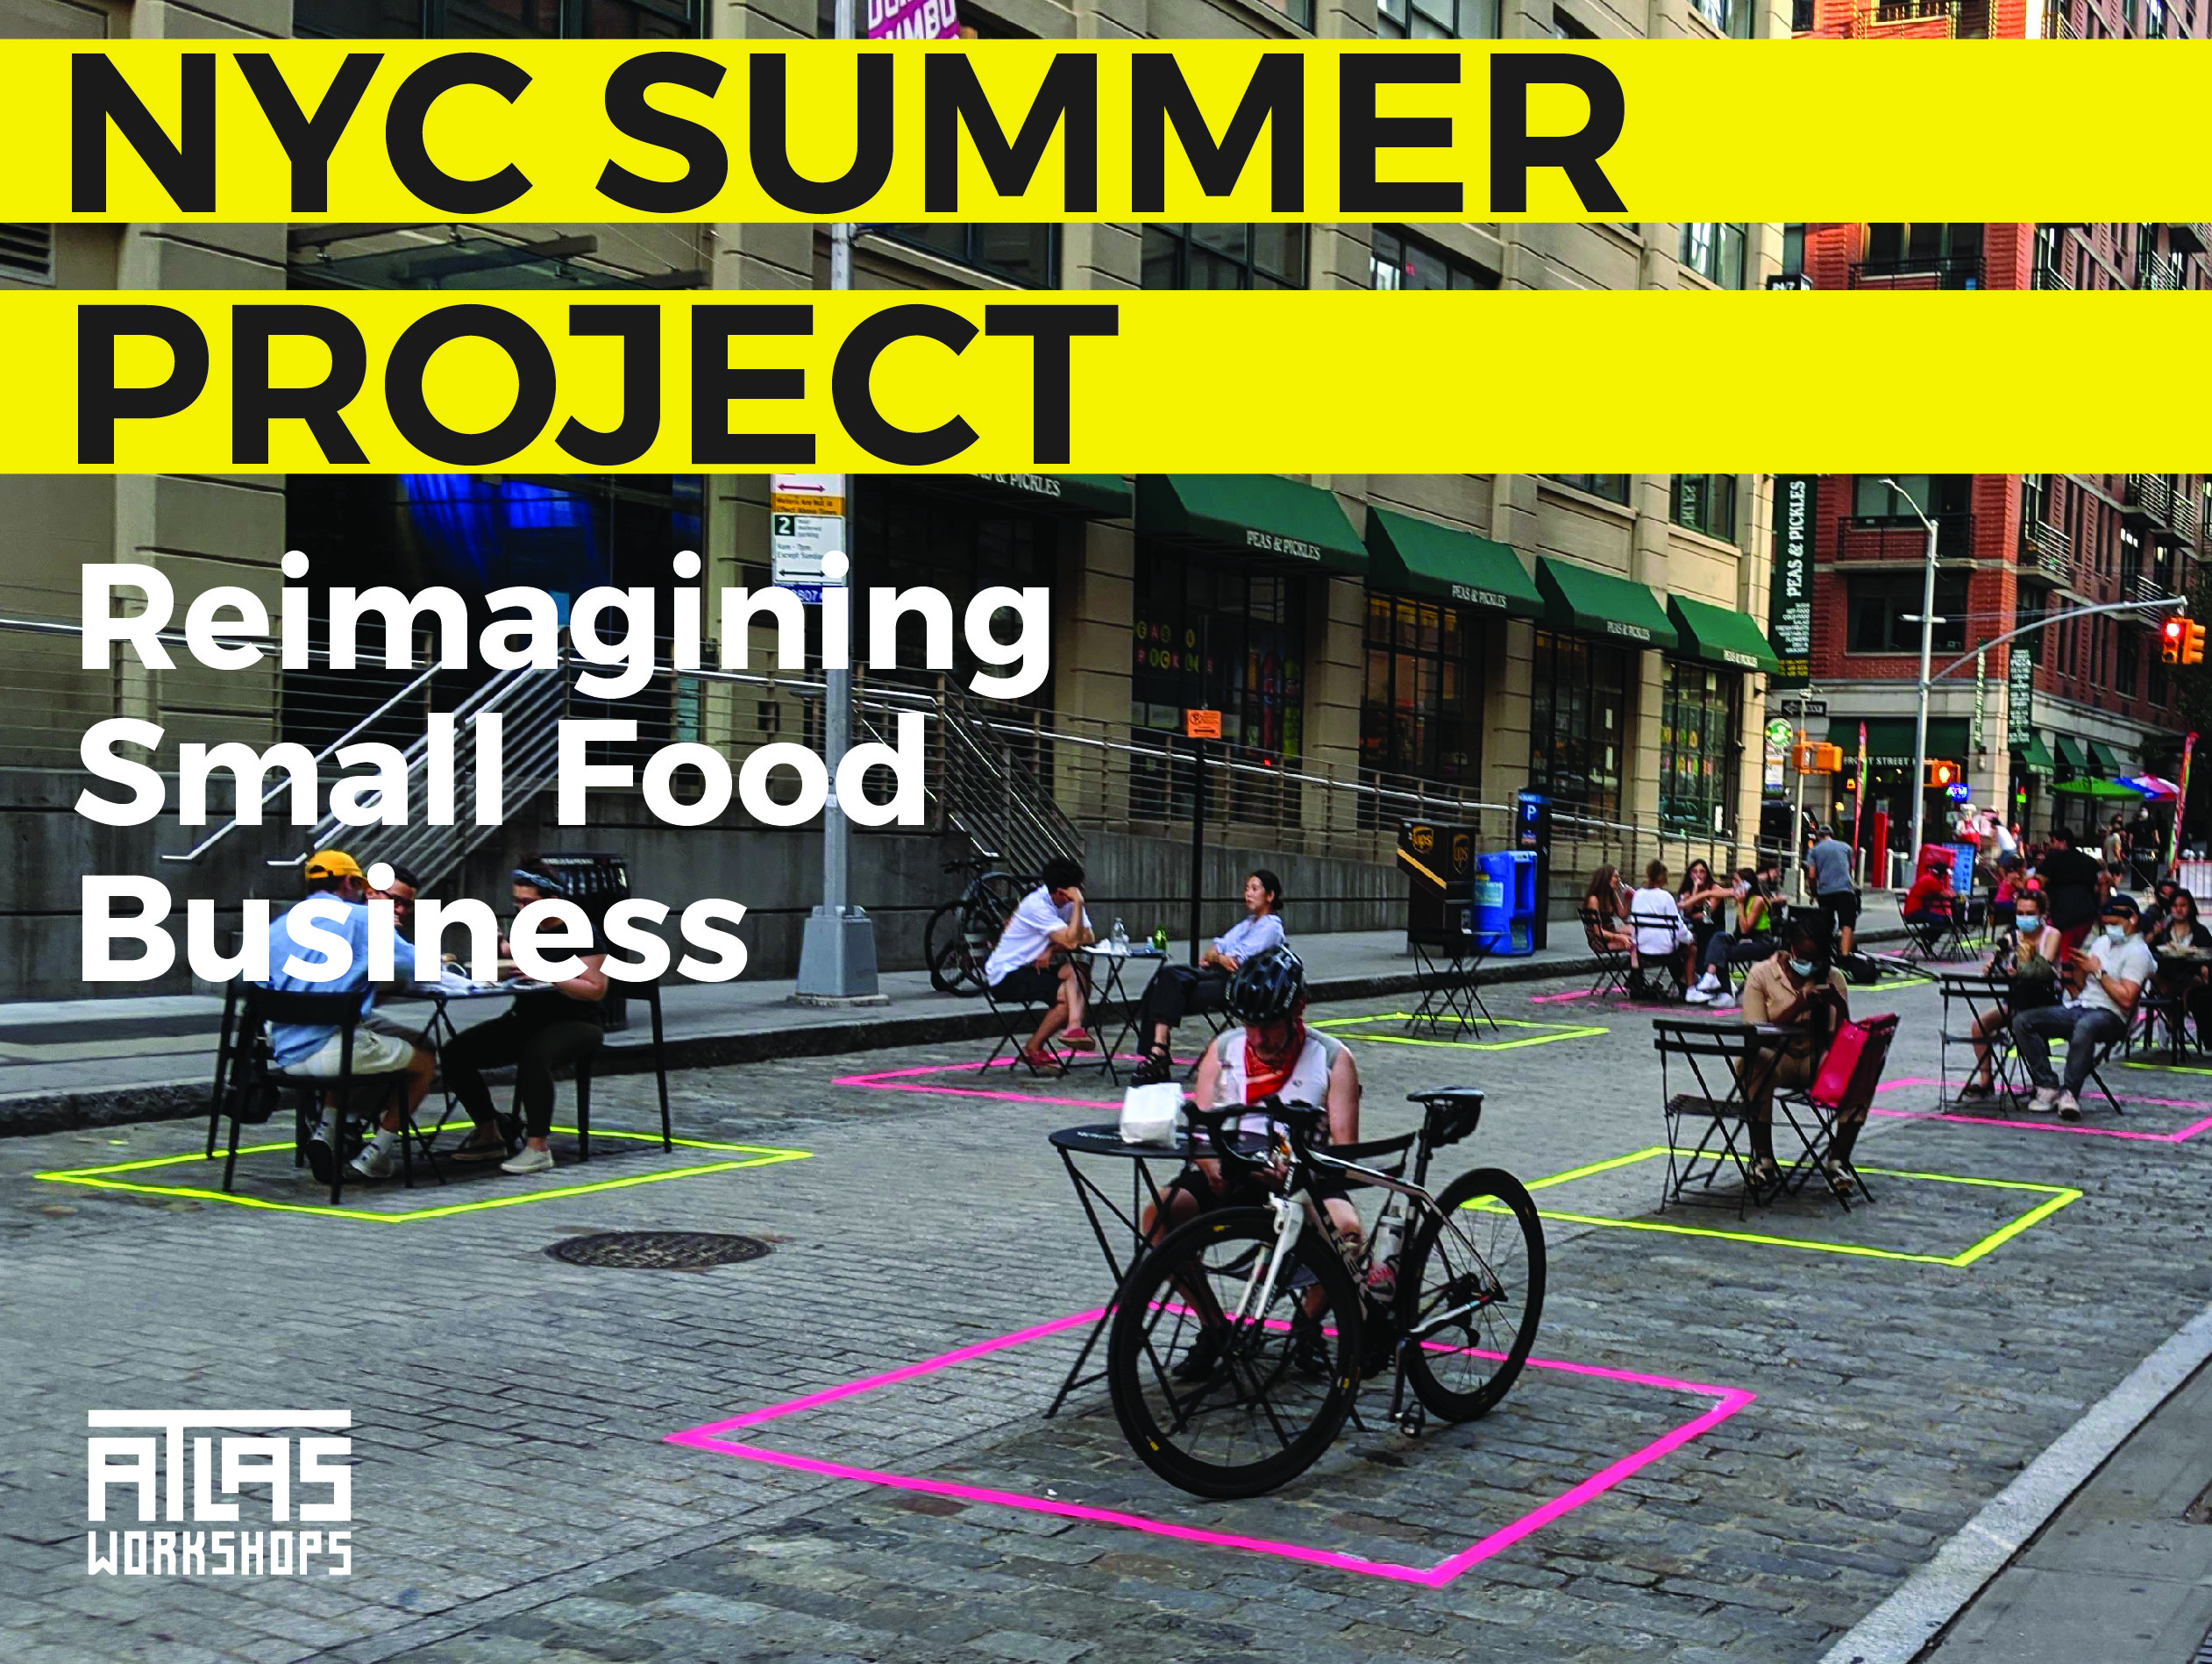 NYC Summer Project: Re-Imagining Small Food Business